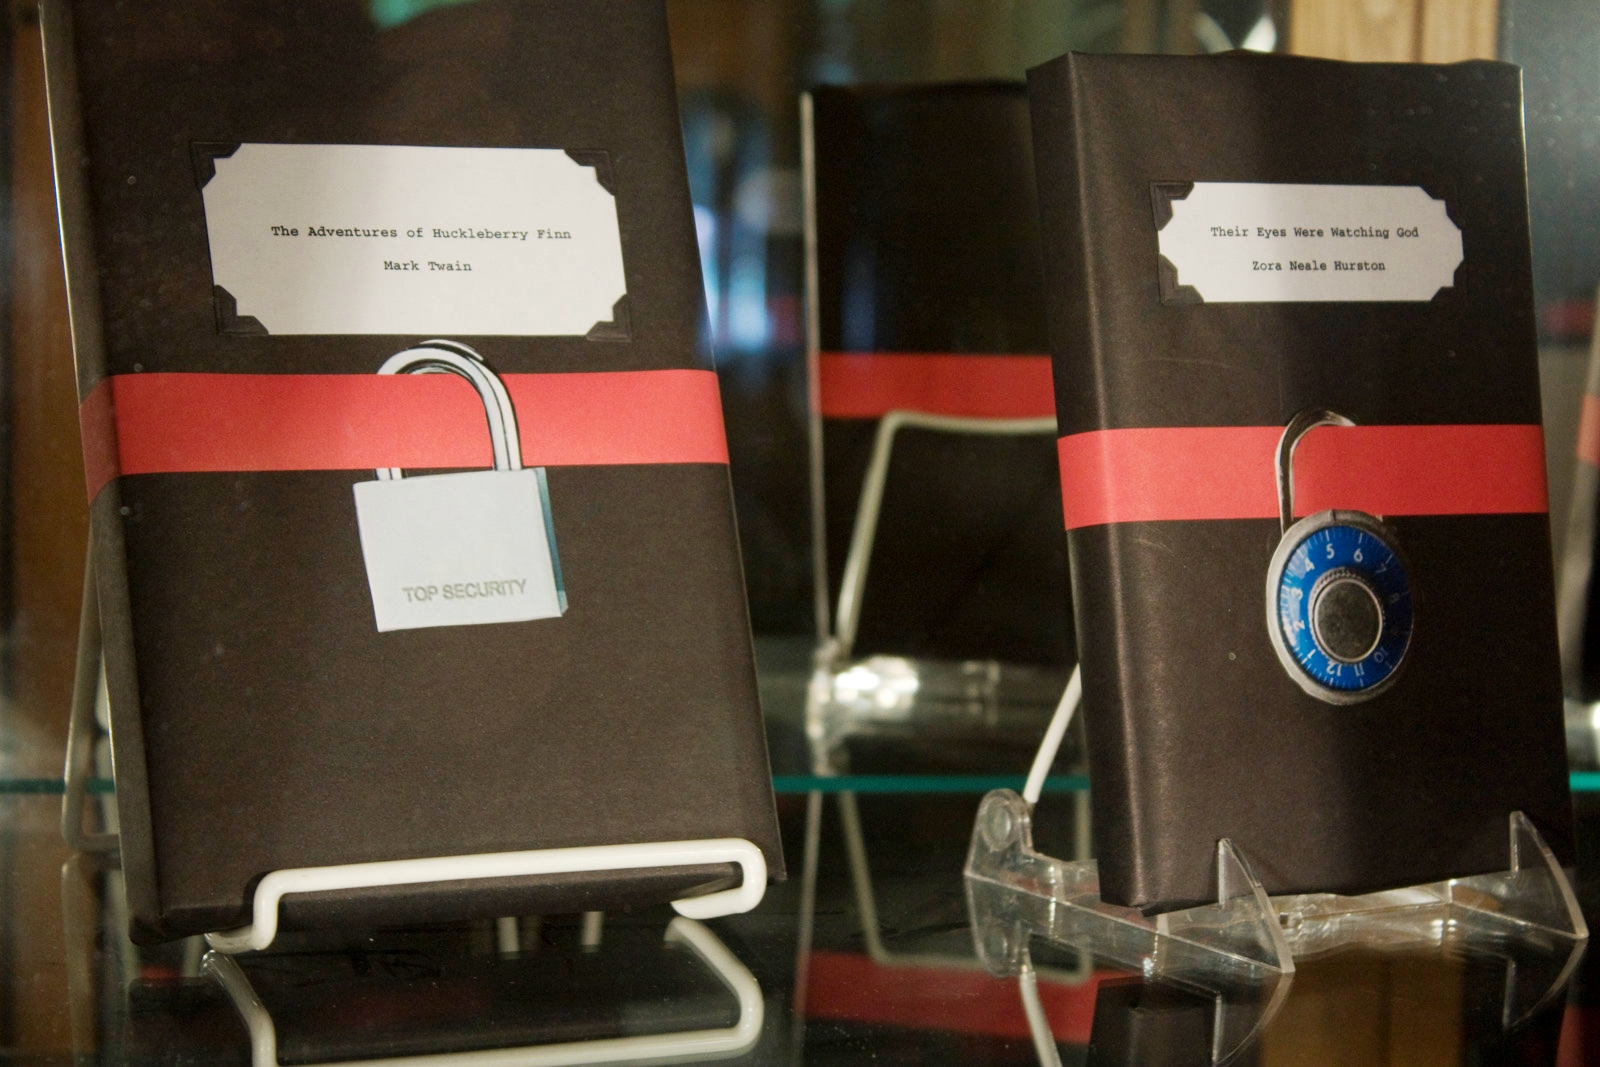 Books are under imaginary lock-and-key in a display at Columbia College Library in Chicago.